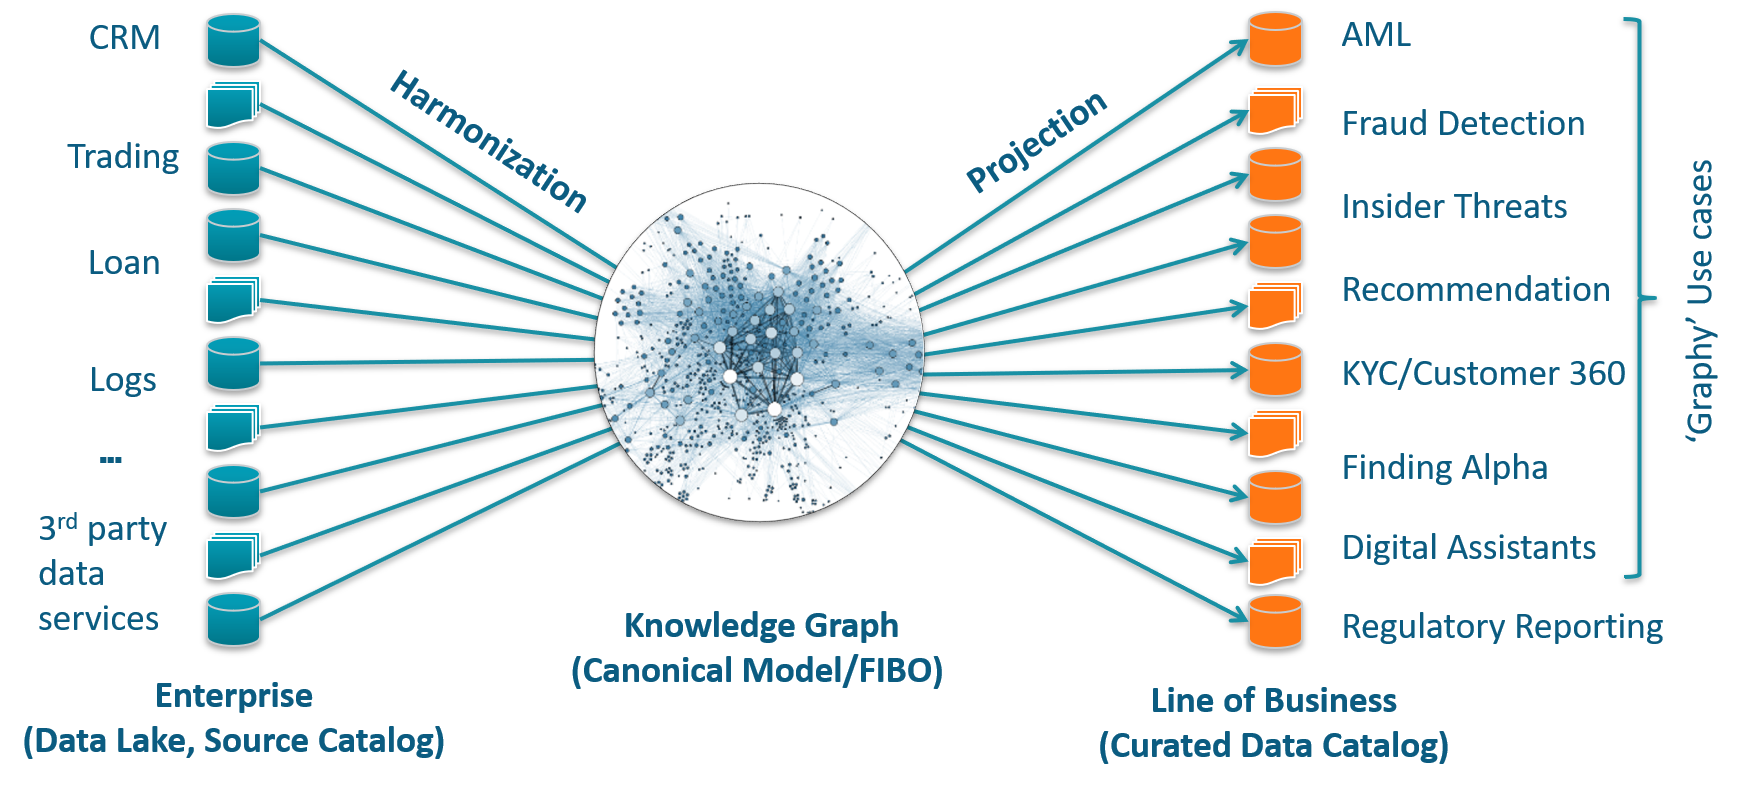 Graph Databases  What's the Big Deal? - Towards Data Science